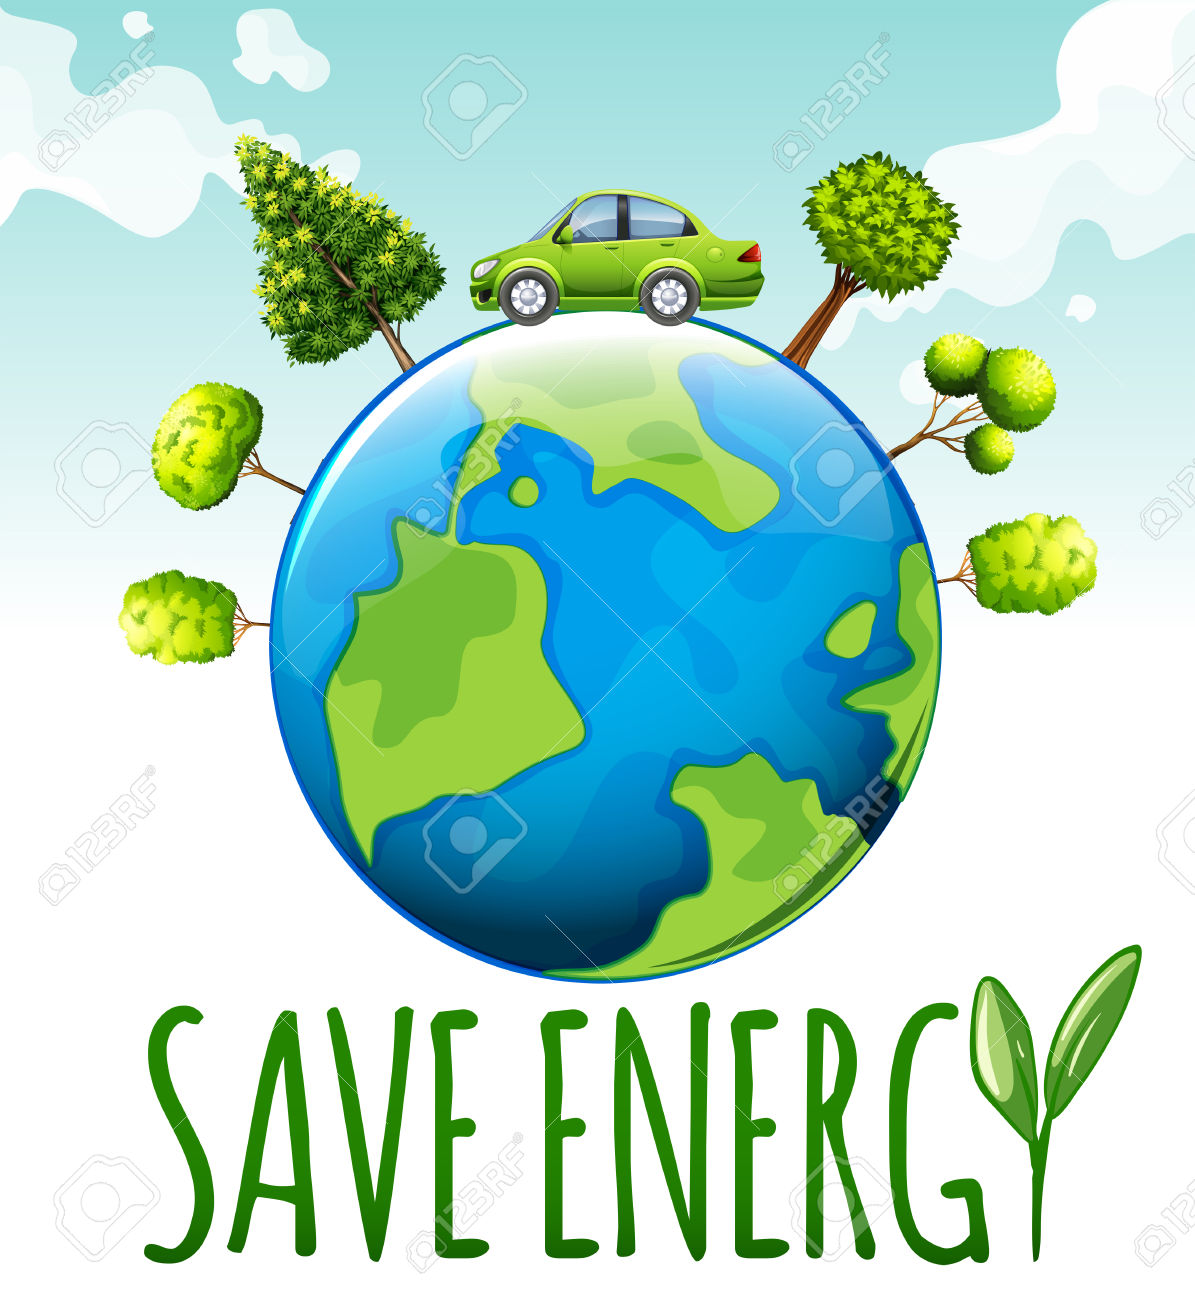 Save energy save environment clipart free Save energy clipart - ClipartFest free